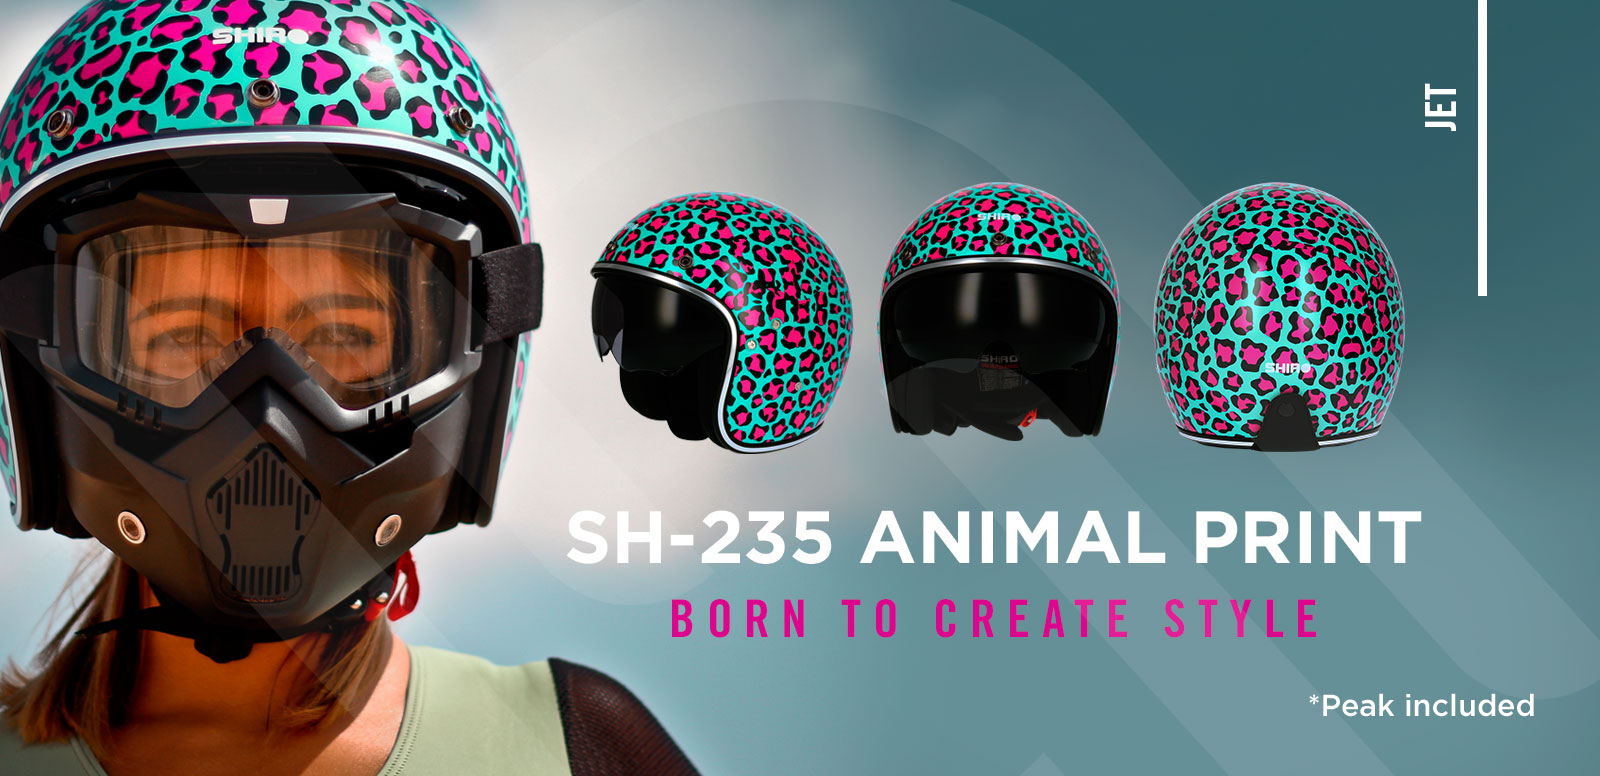 BANNER-CASCO-SHIRO-SH235-ANIMAL-PRINT